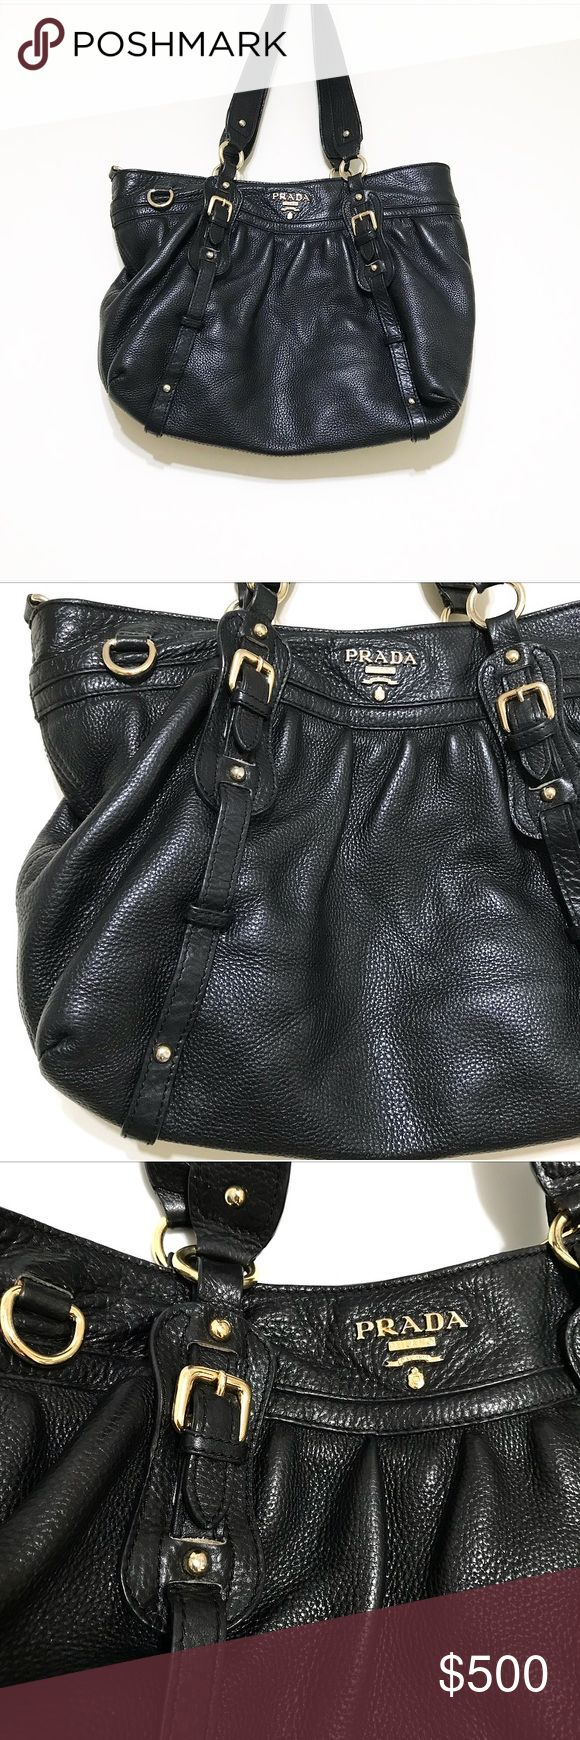 PRADA! Black pebbles leather. Excellent purse PRADA! Black pebbles leather. Excellent purse for daily wear or a night out. Slouch shoulder bag💕 gold hardware. The gold colored is fading on the label but it's so minor I can't even get it to show on camera. Sadly this is normal wear. Inside zipper pocket and two small side pockets inside. No crossbody strap. No wear on leather and inside is mint condition Prada Bags Shoulder Bags